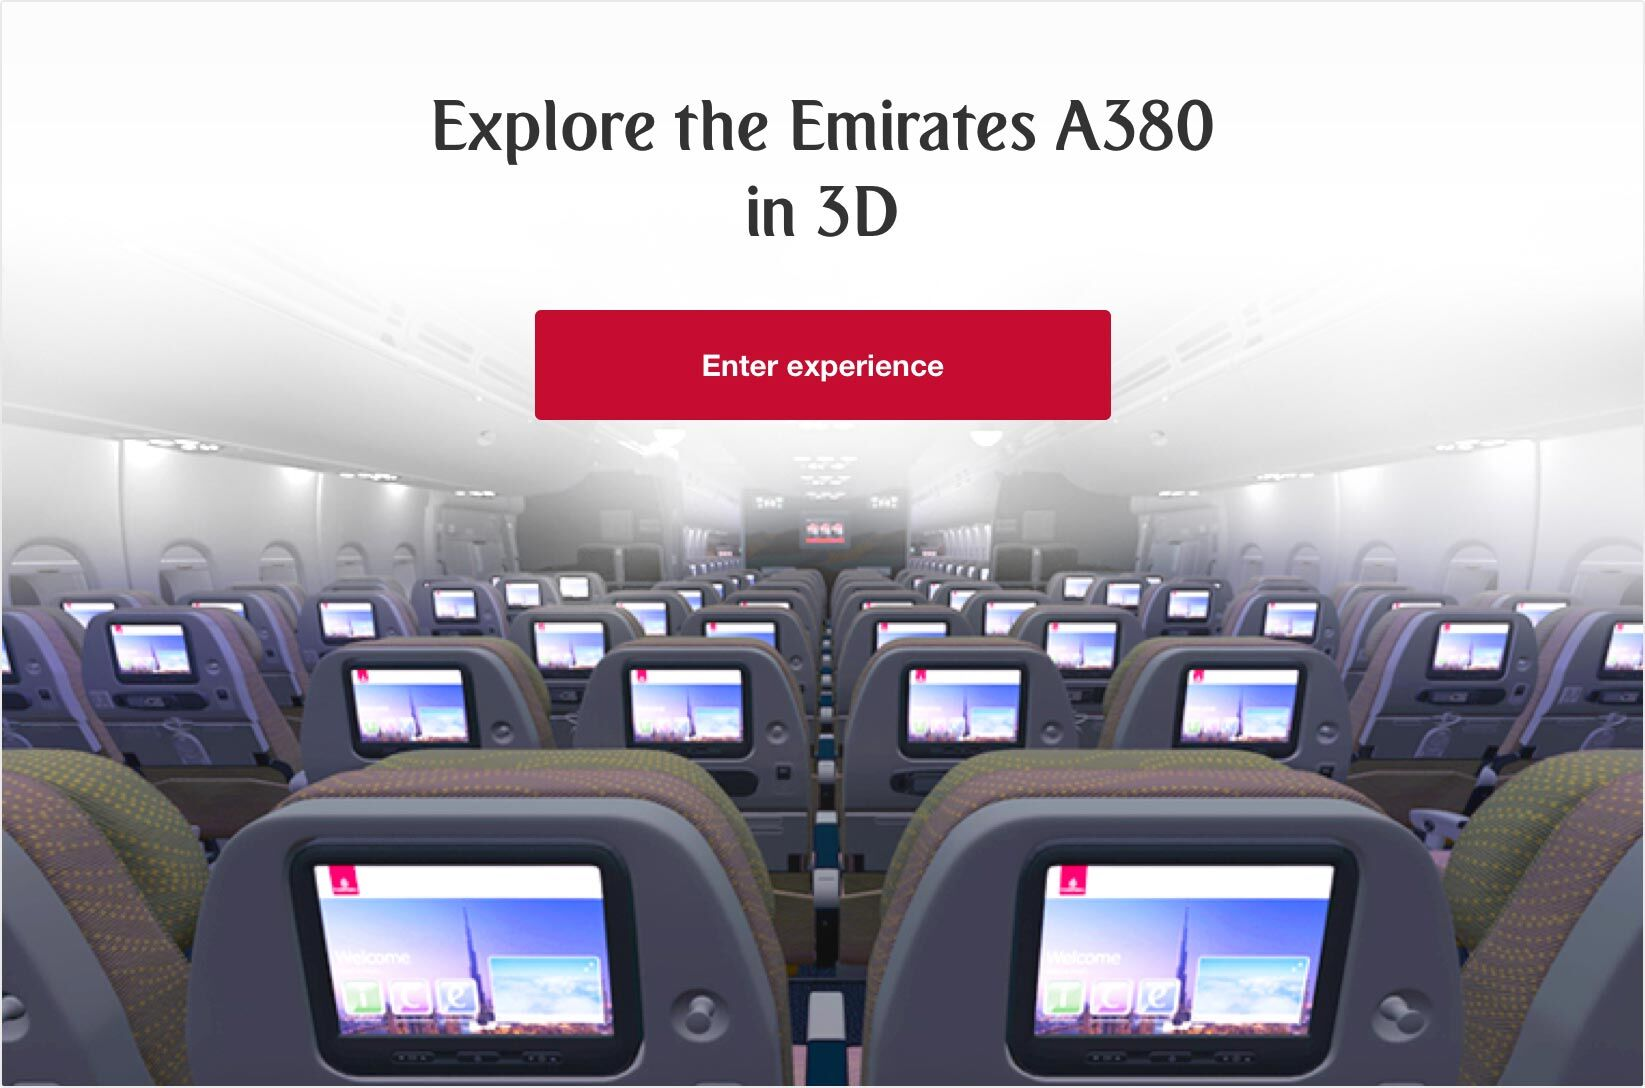 Emirates A380 | Our fleet | The Emirates Experience | Emirates